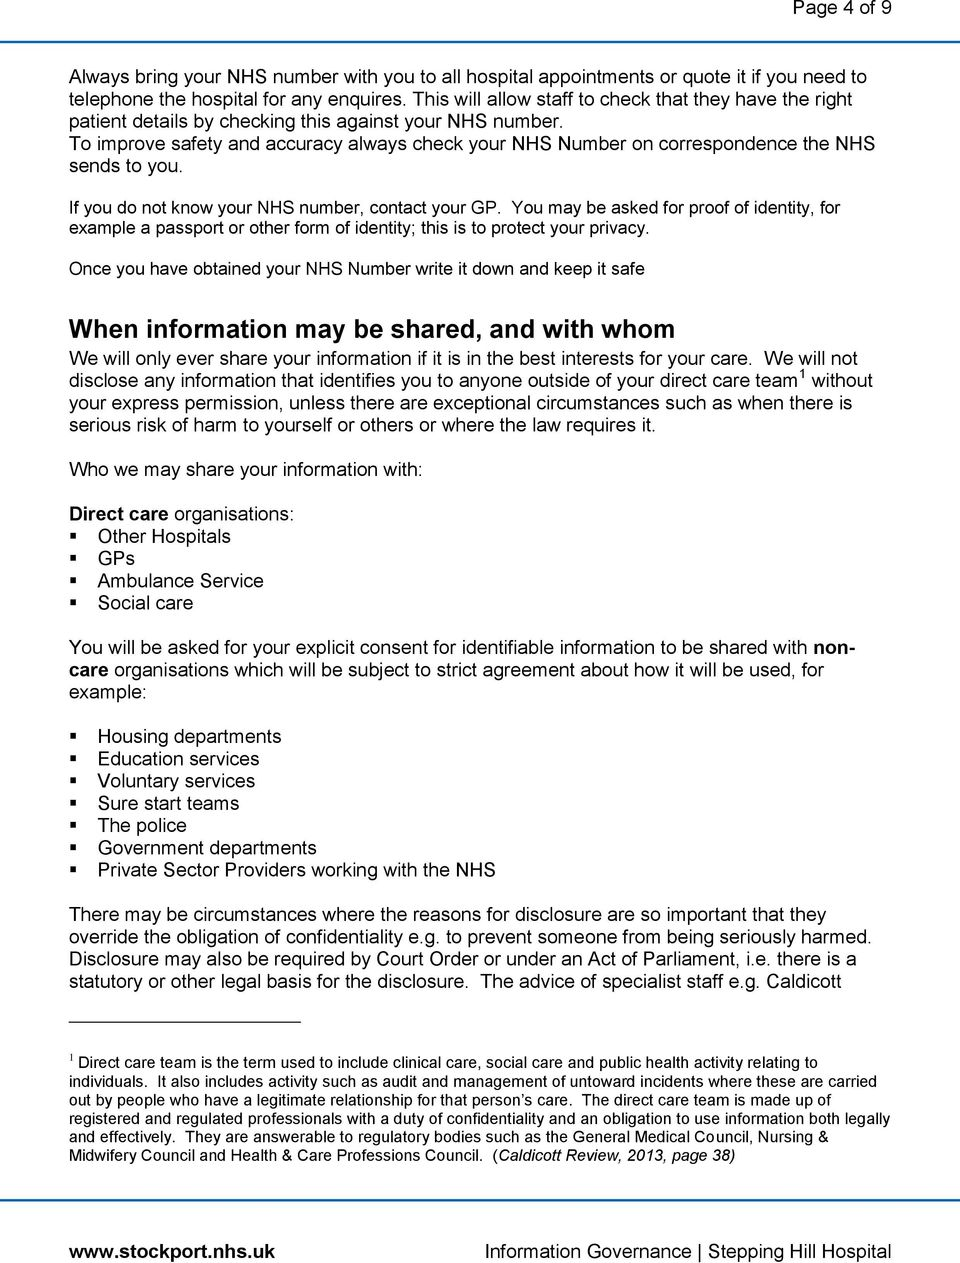 To improve safety and accuracy always check your NHS Number on correspondence the NHS sends to you. If you do not know your NHS number, contact your GP.